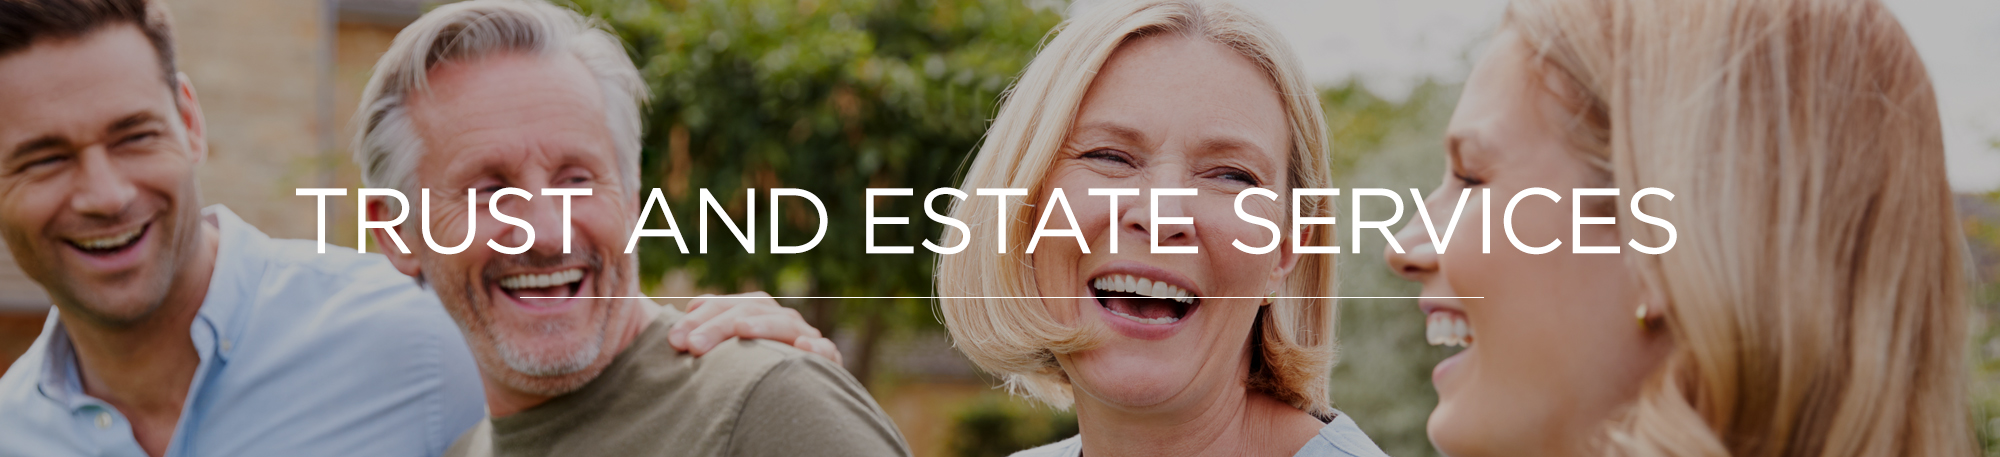 Trust and Estate Services